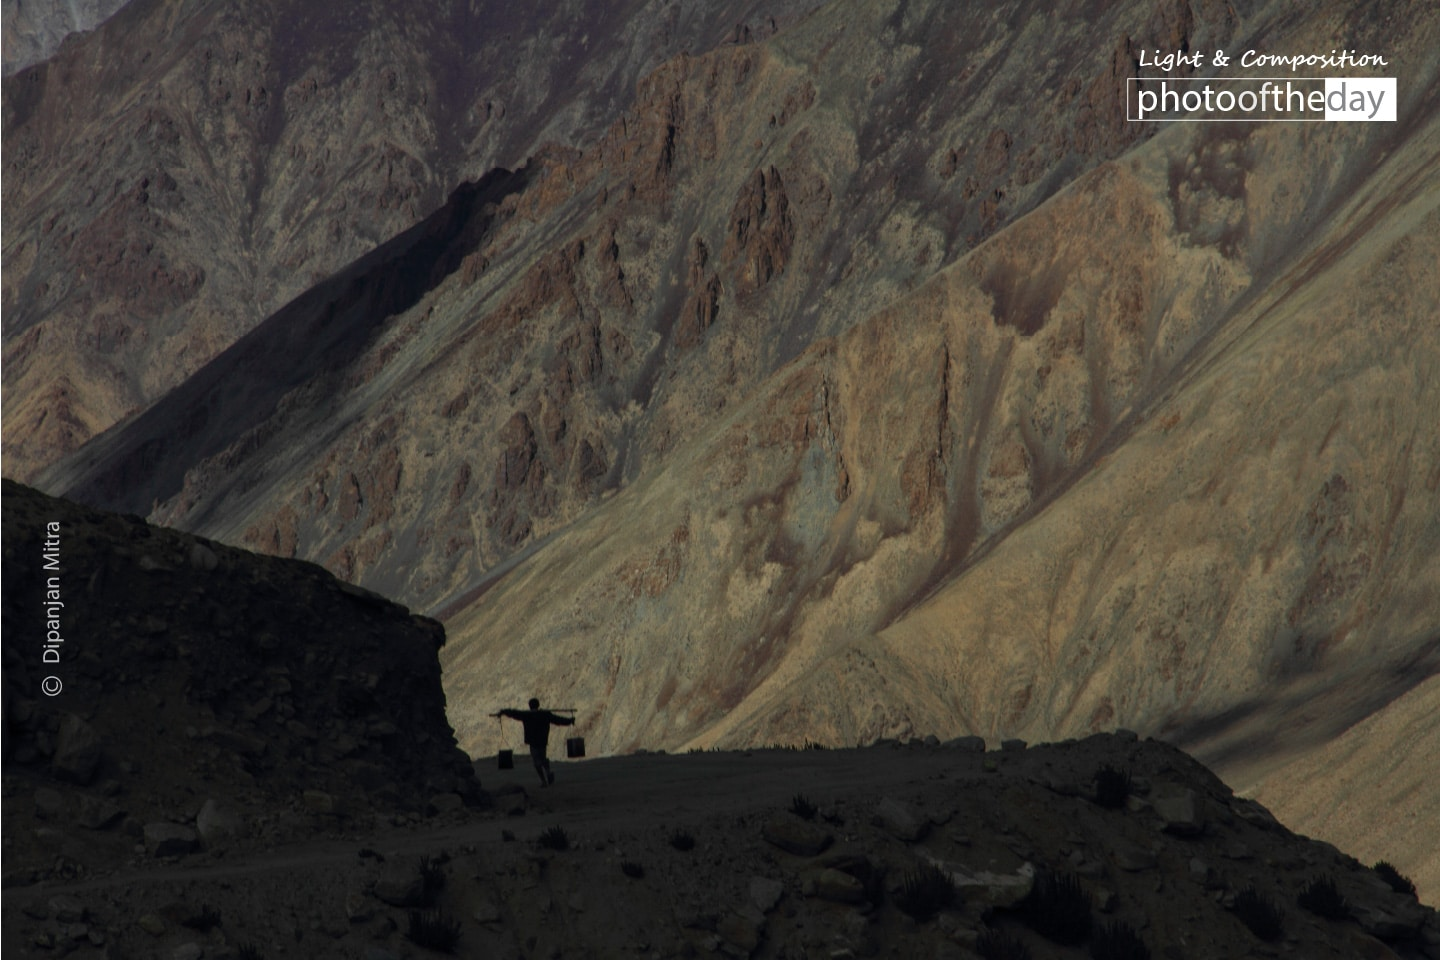 Life in the Mountains, by Dipanjan Mitra